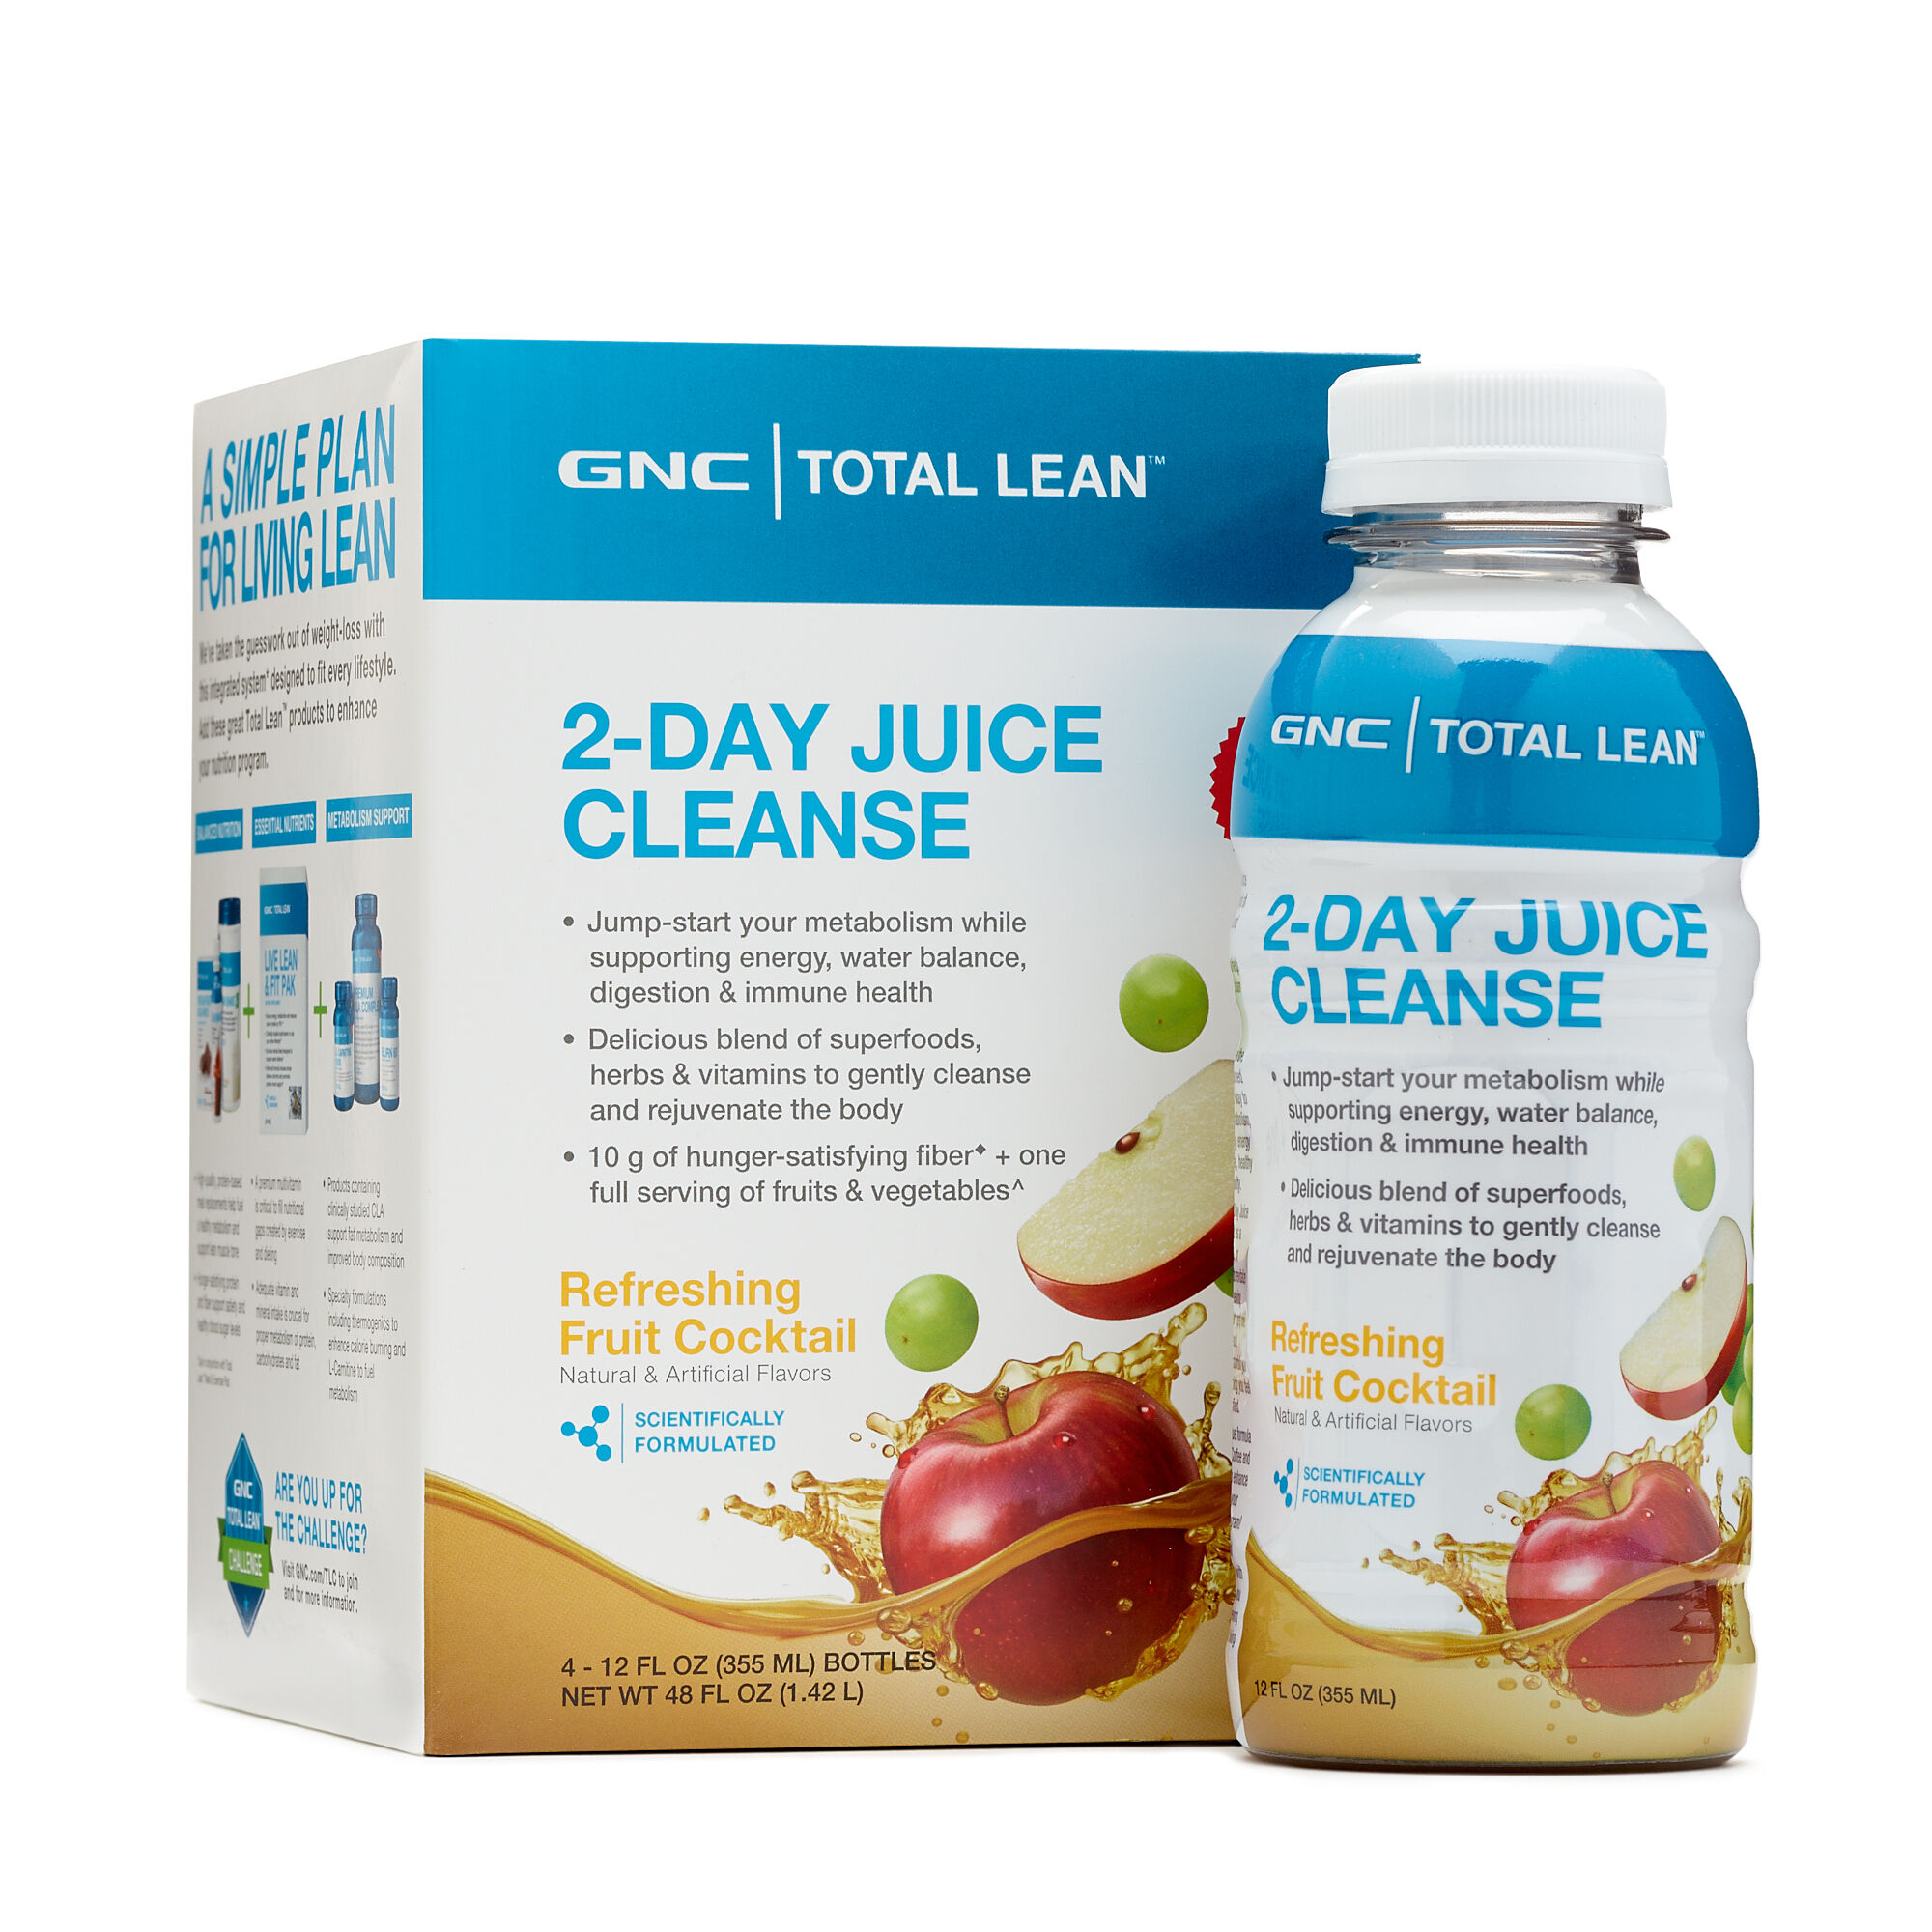 Gnc total lean 2 day juice cleanse refreshing fruit cocktail gnc images 2 day juice cleanse malvernweather